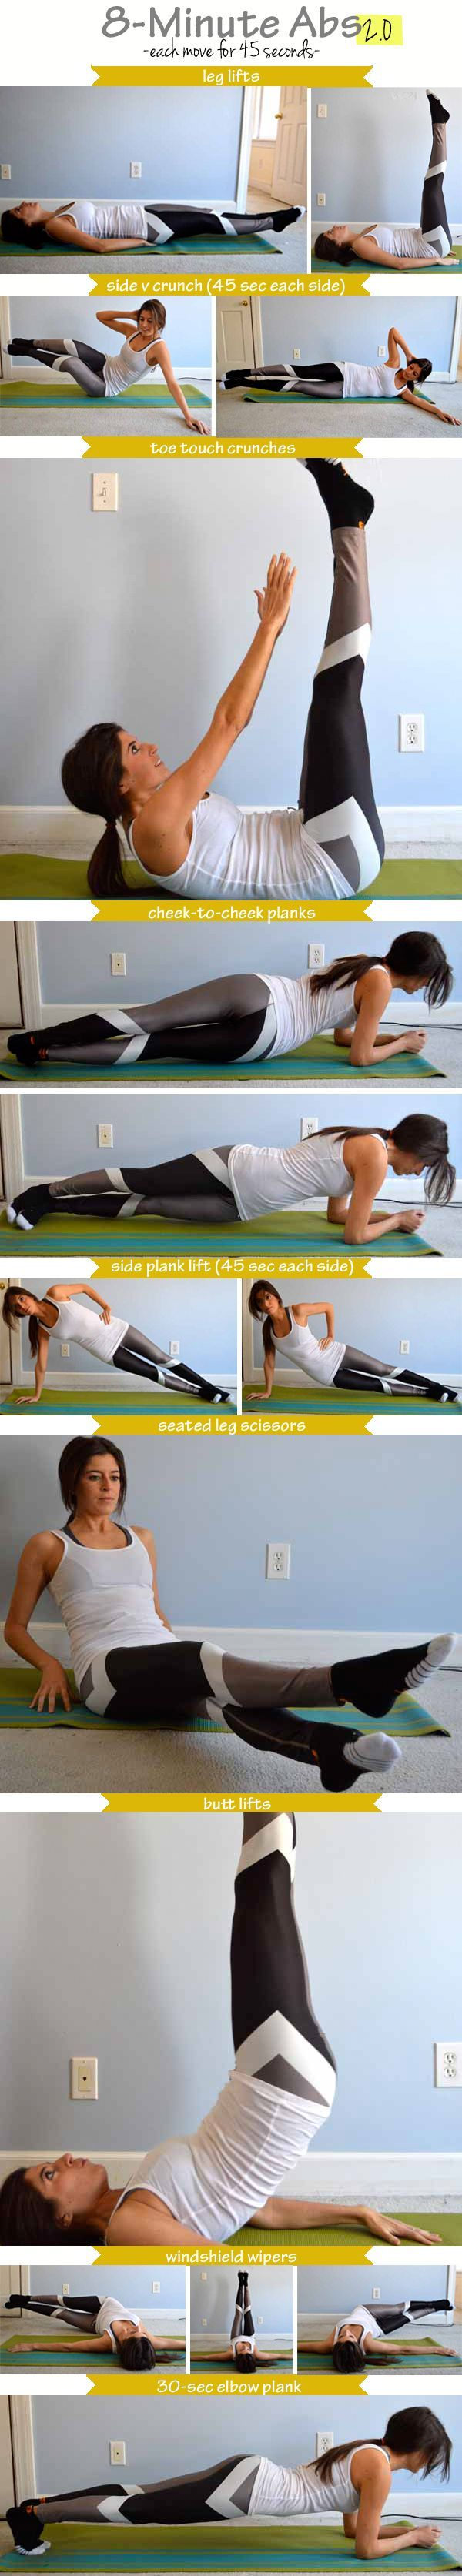 8 minute ab workout workout plans, workouts #workout #fitness